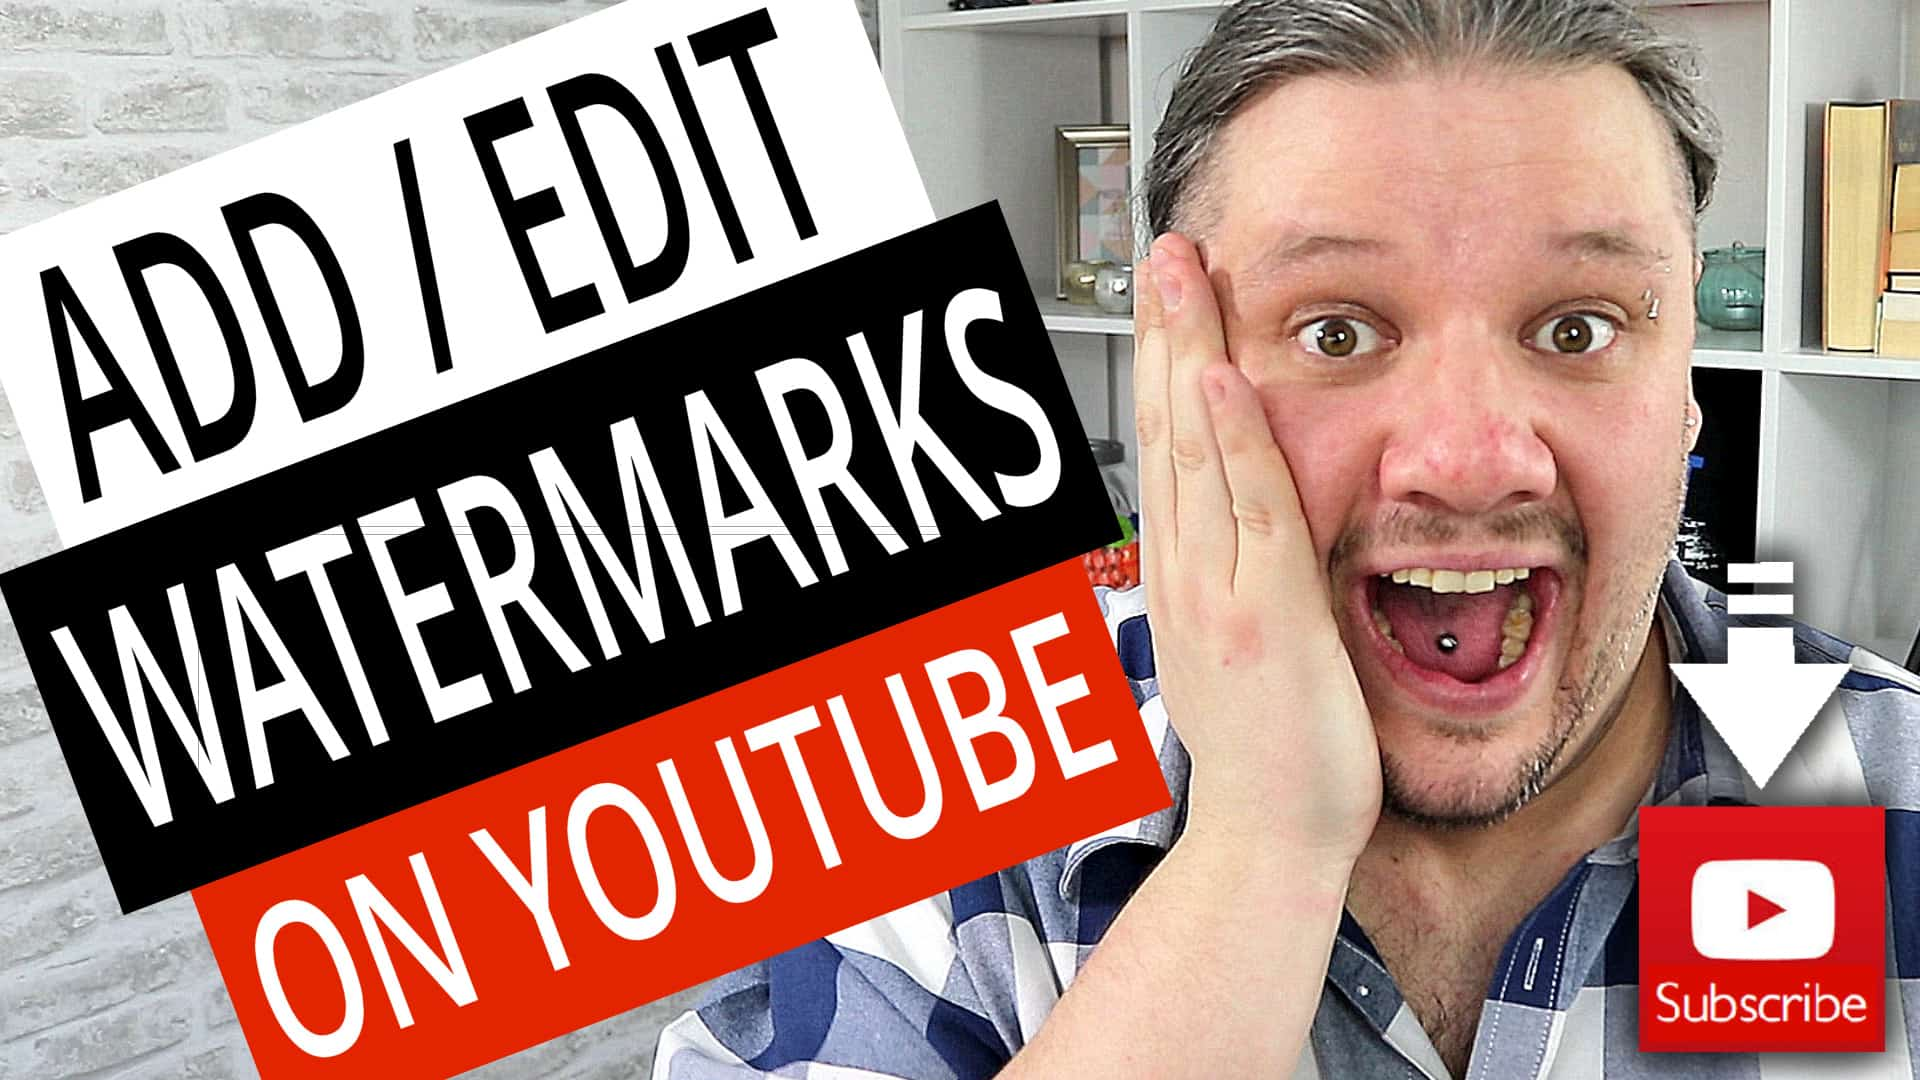 How To Add A Watermark To YouTube Videos 2019